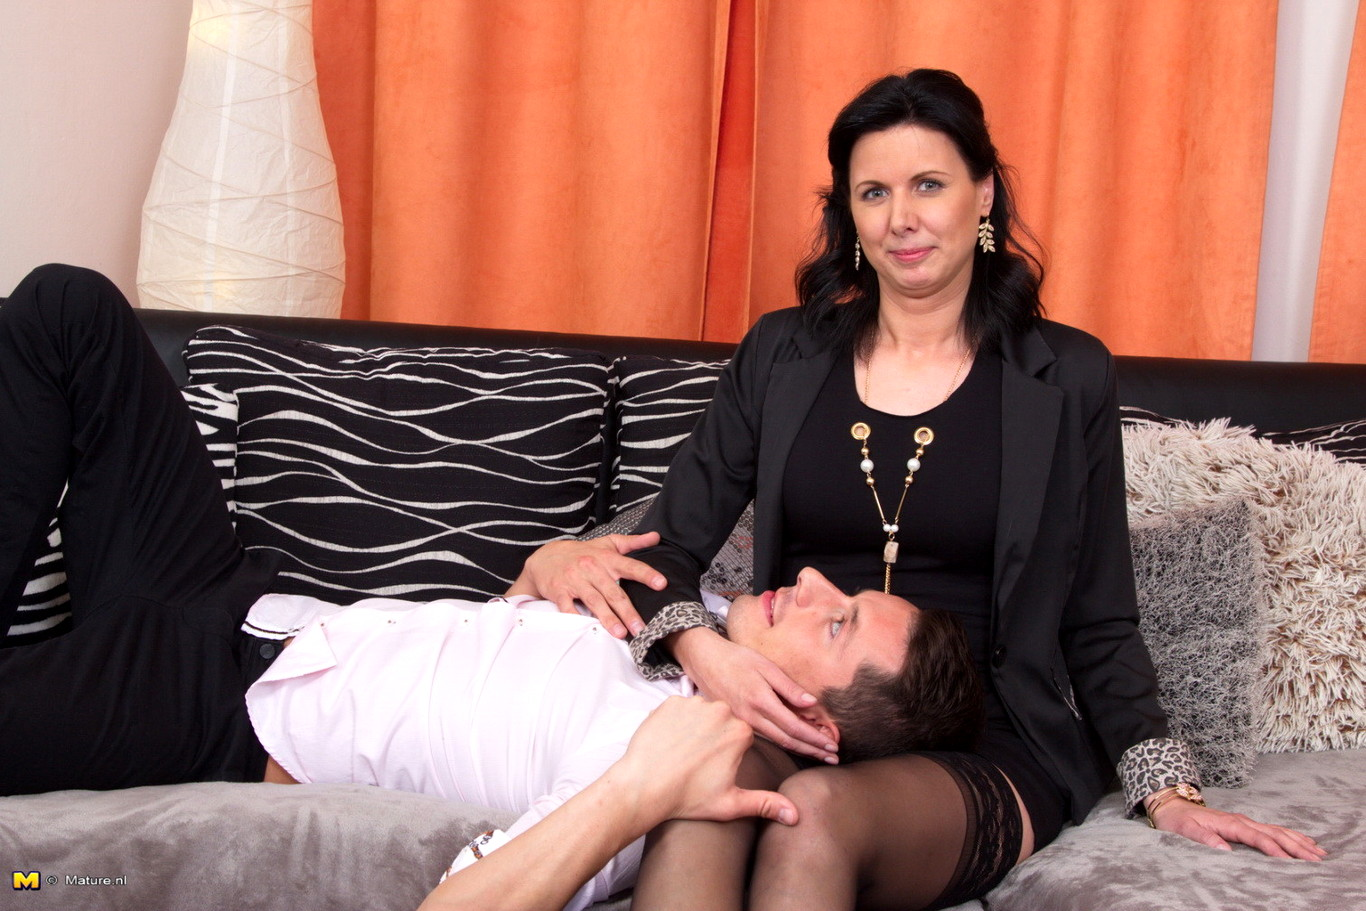 Mature Nl Maturenl Model Adorable Mom And Son Queen Sex Hd -9547